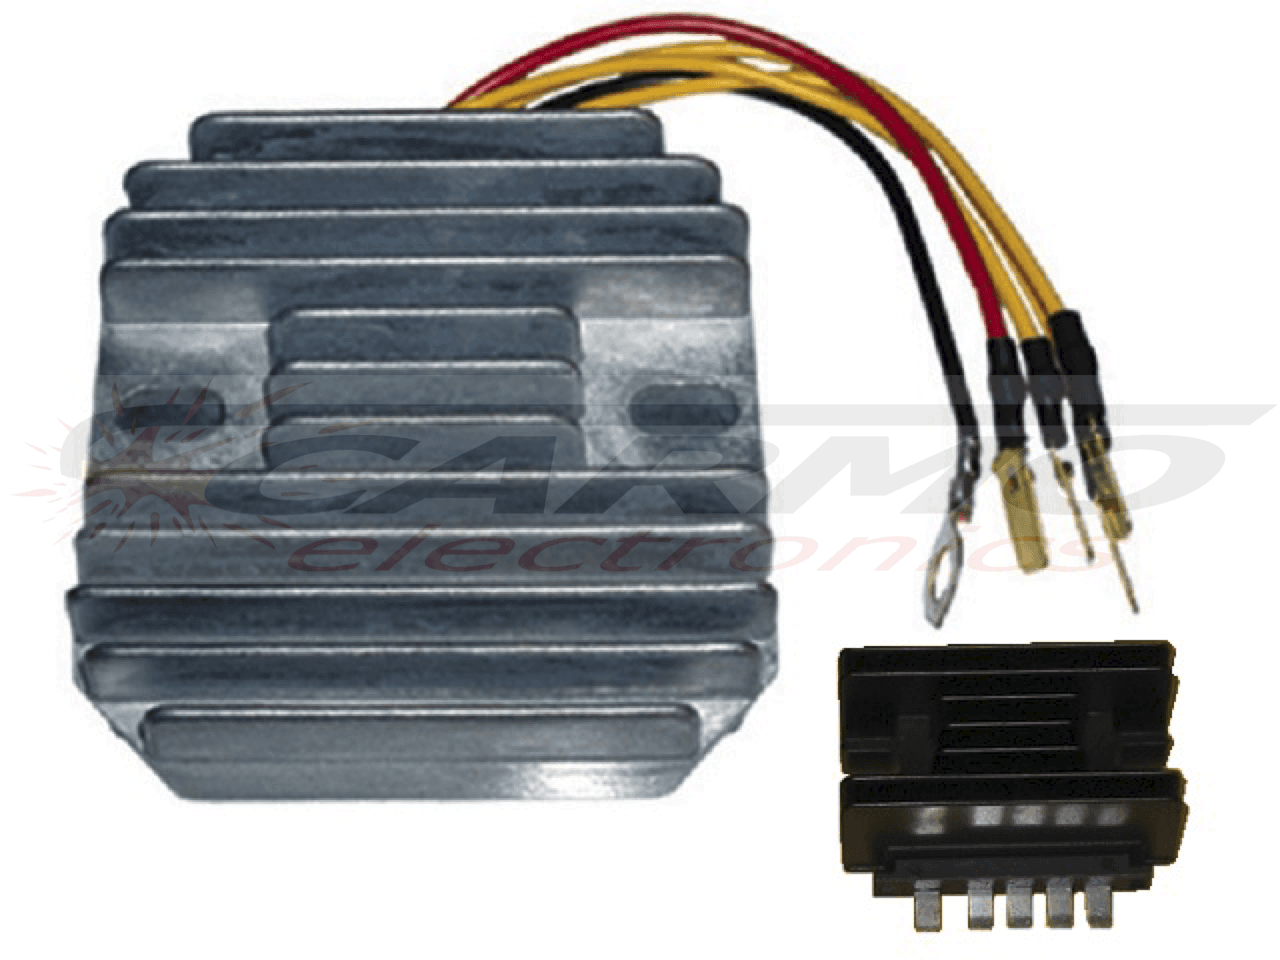 Voltage Regulator Rectifier Carmo Electronics The Place For 1983 Honda Shadow Motorcycle Carr131